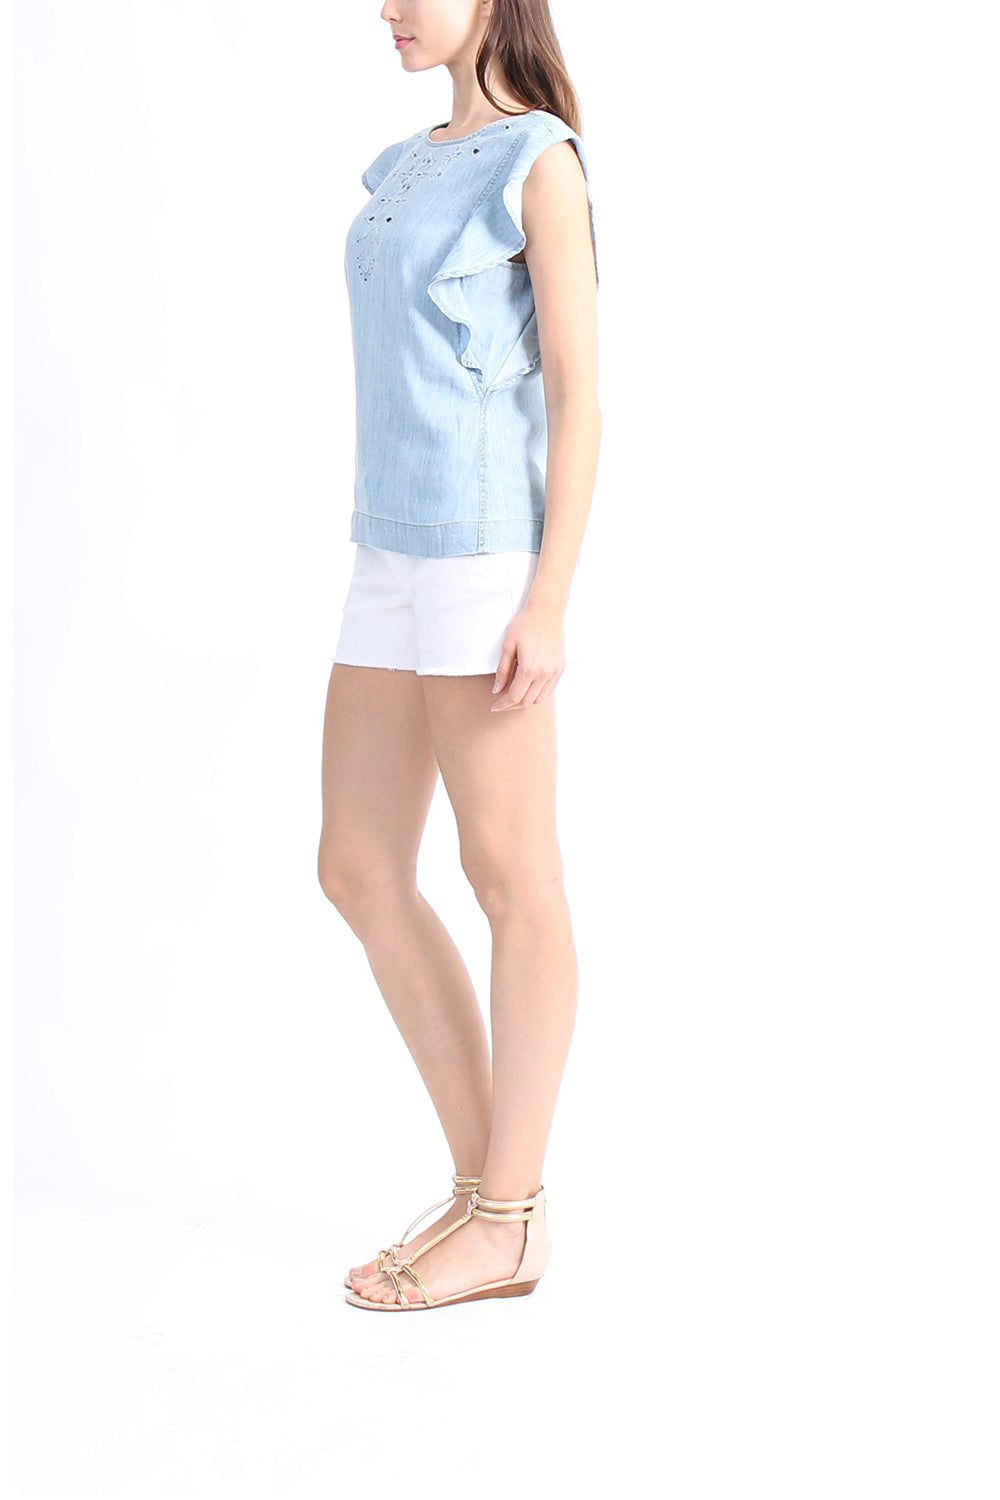 Level 99 Chambray Top